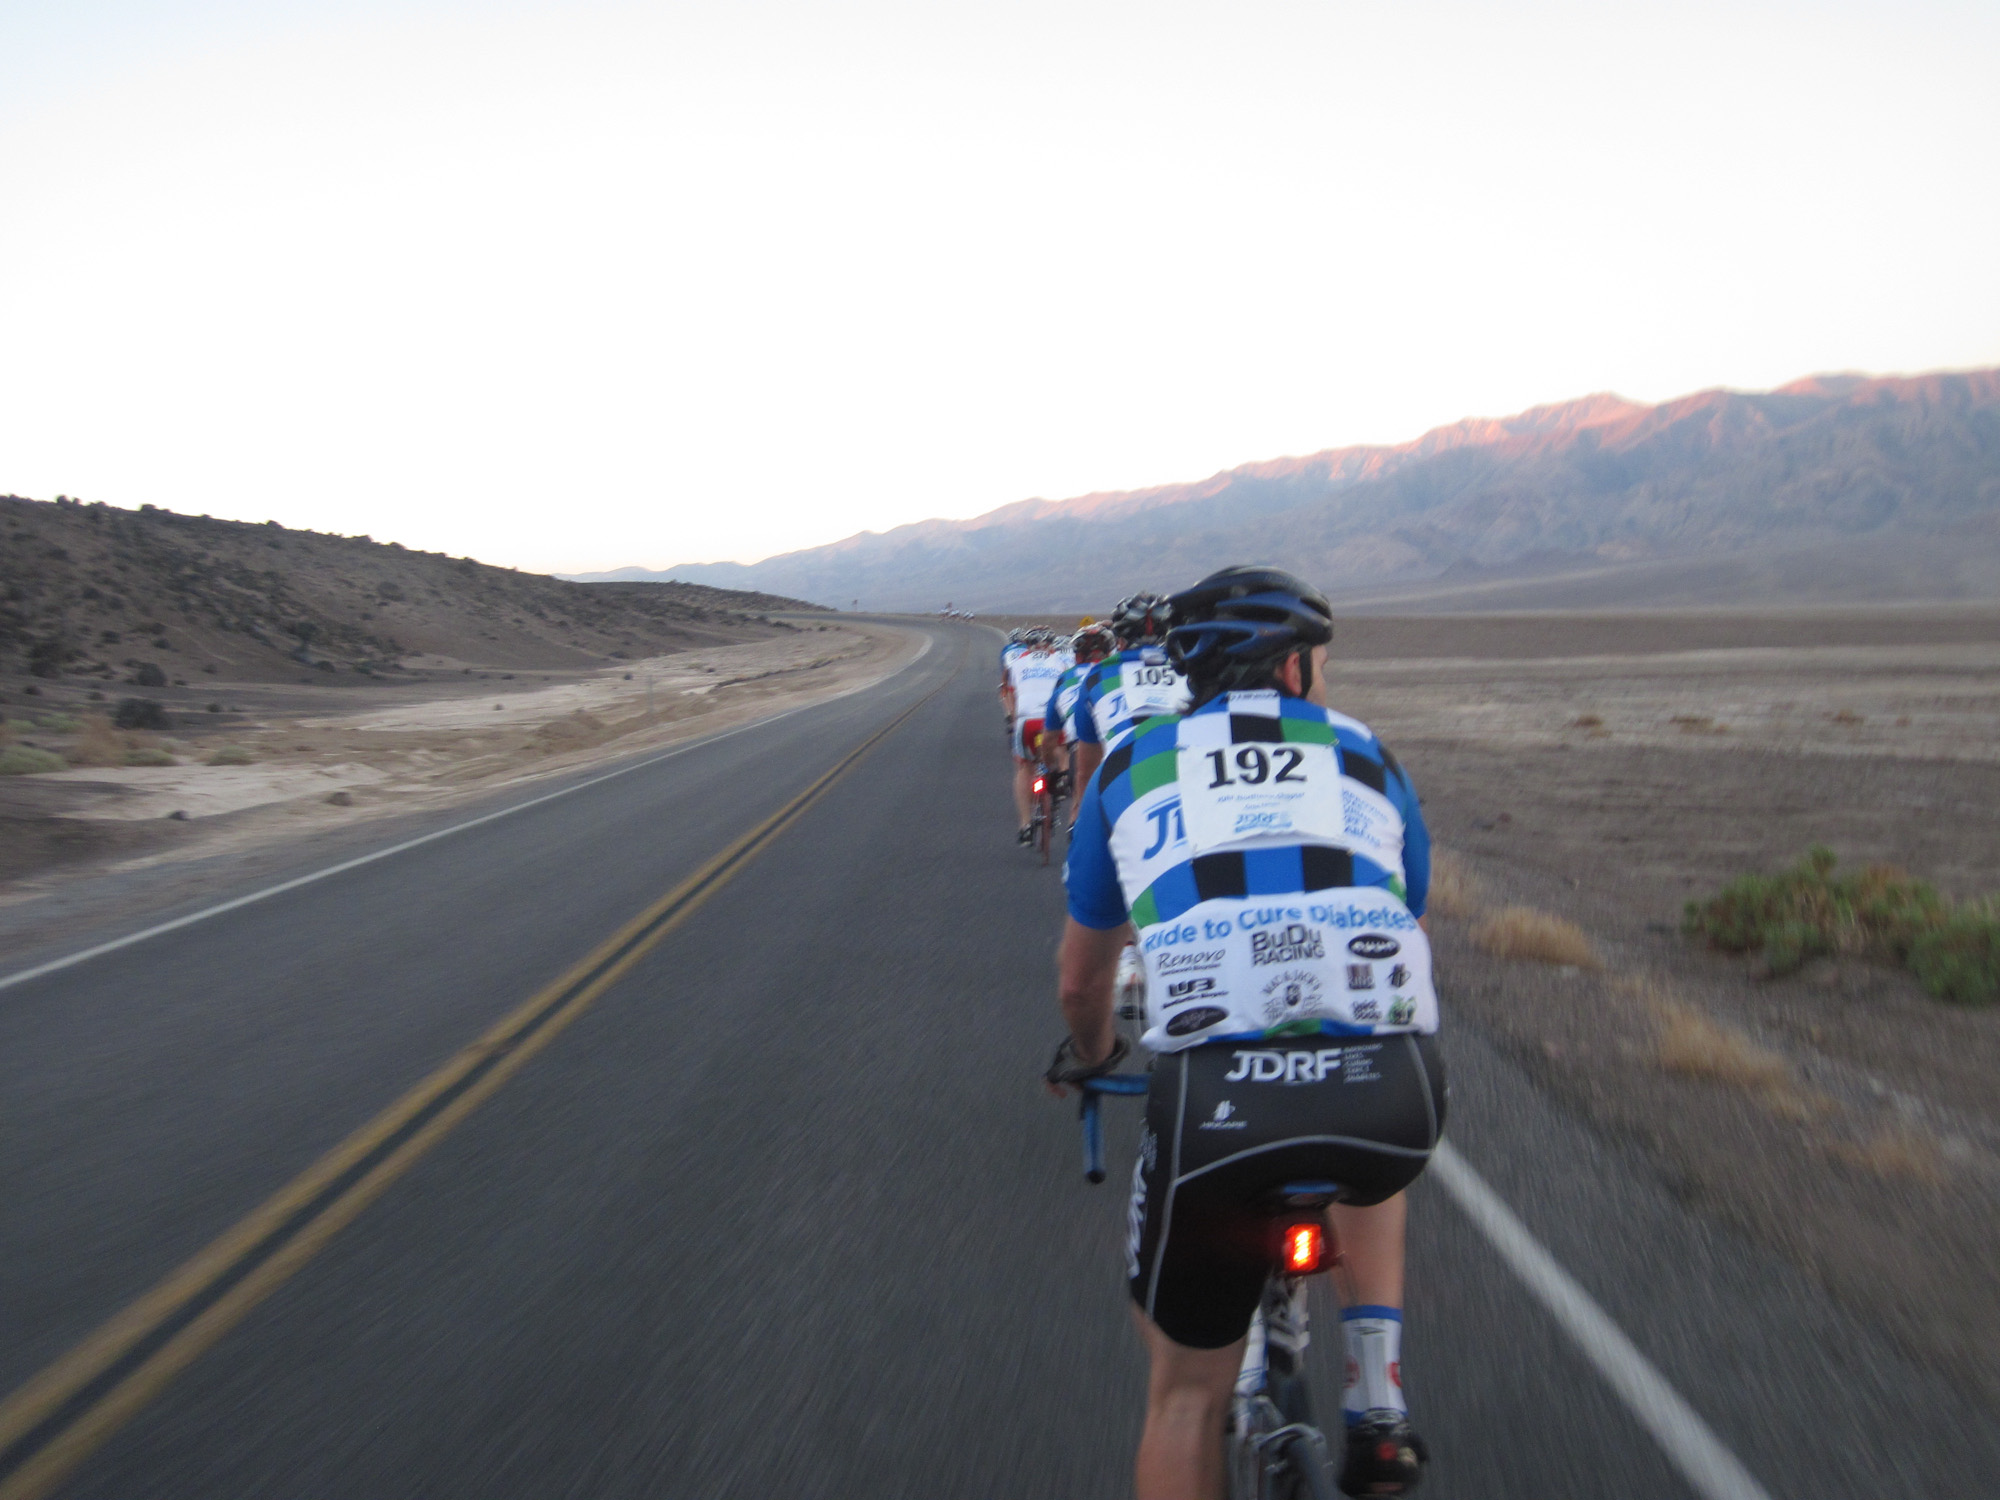 On the way to Badwater